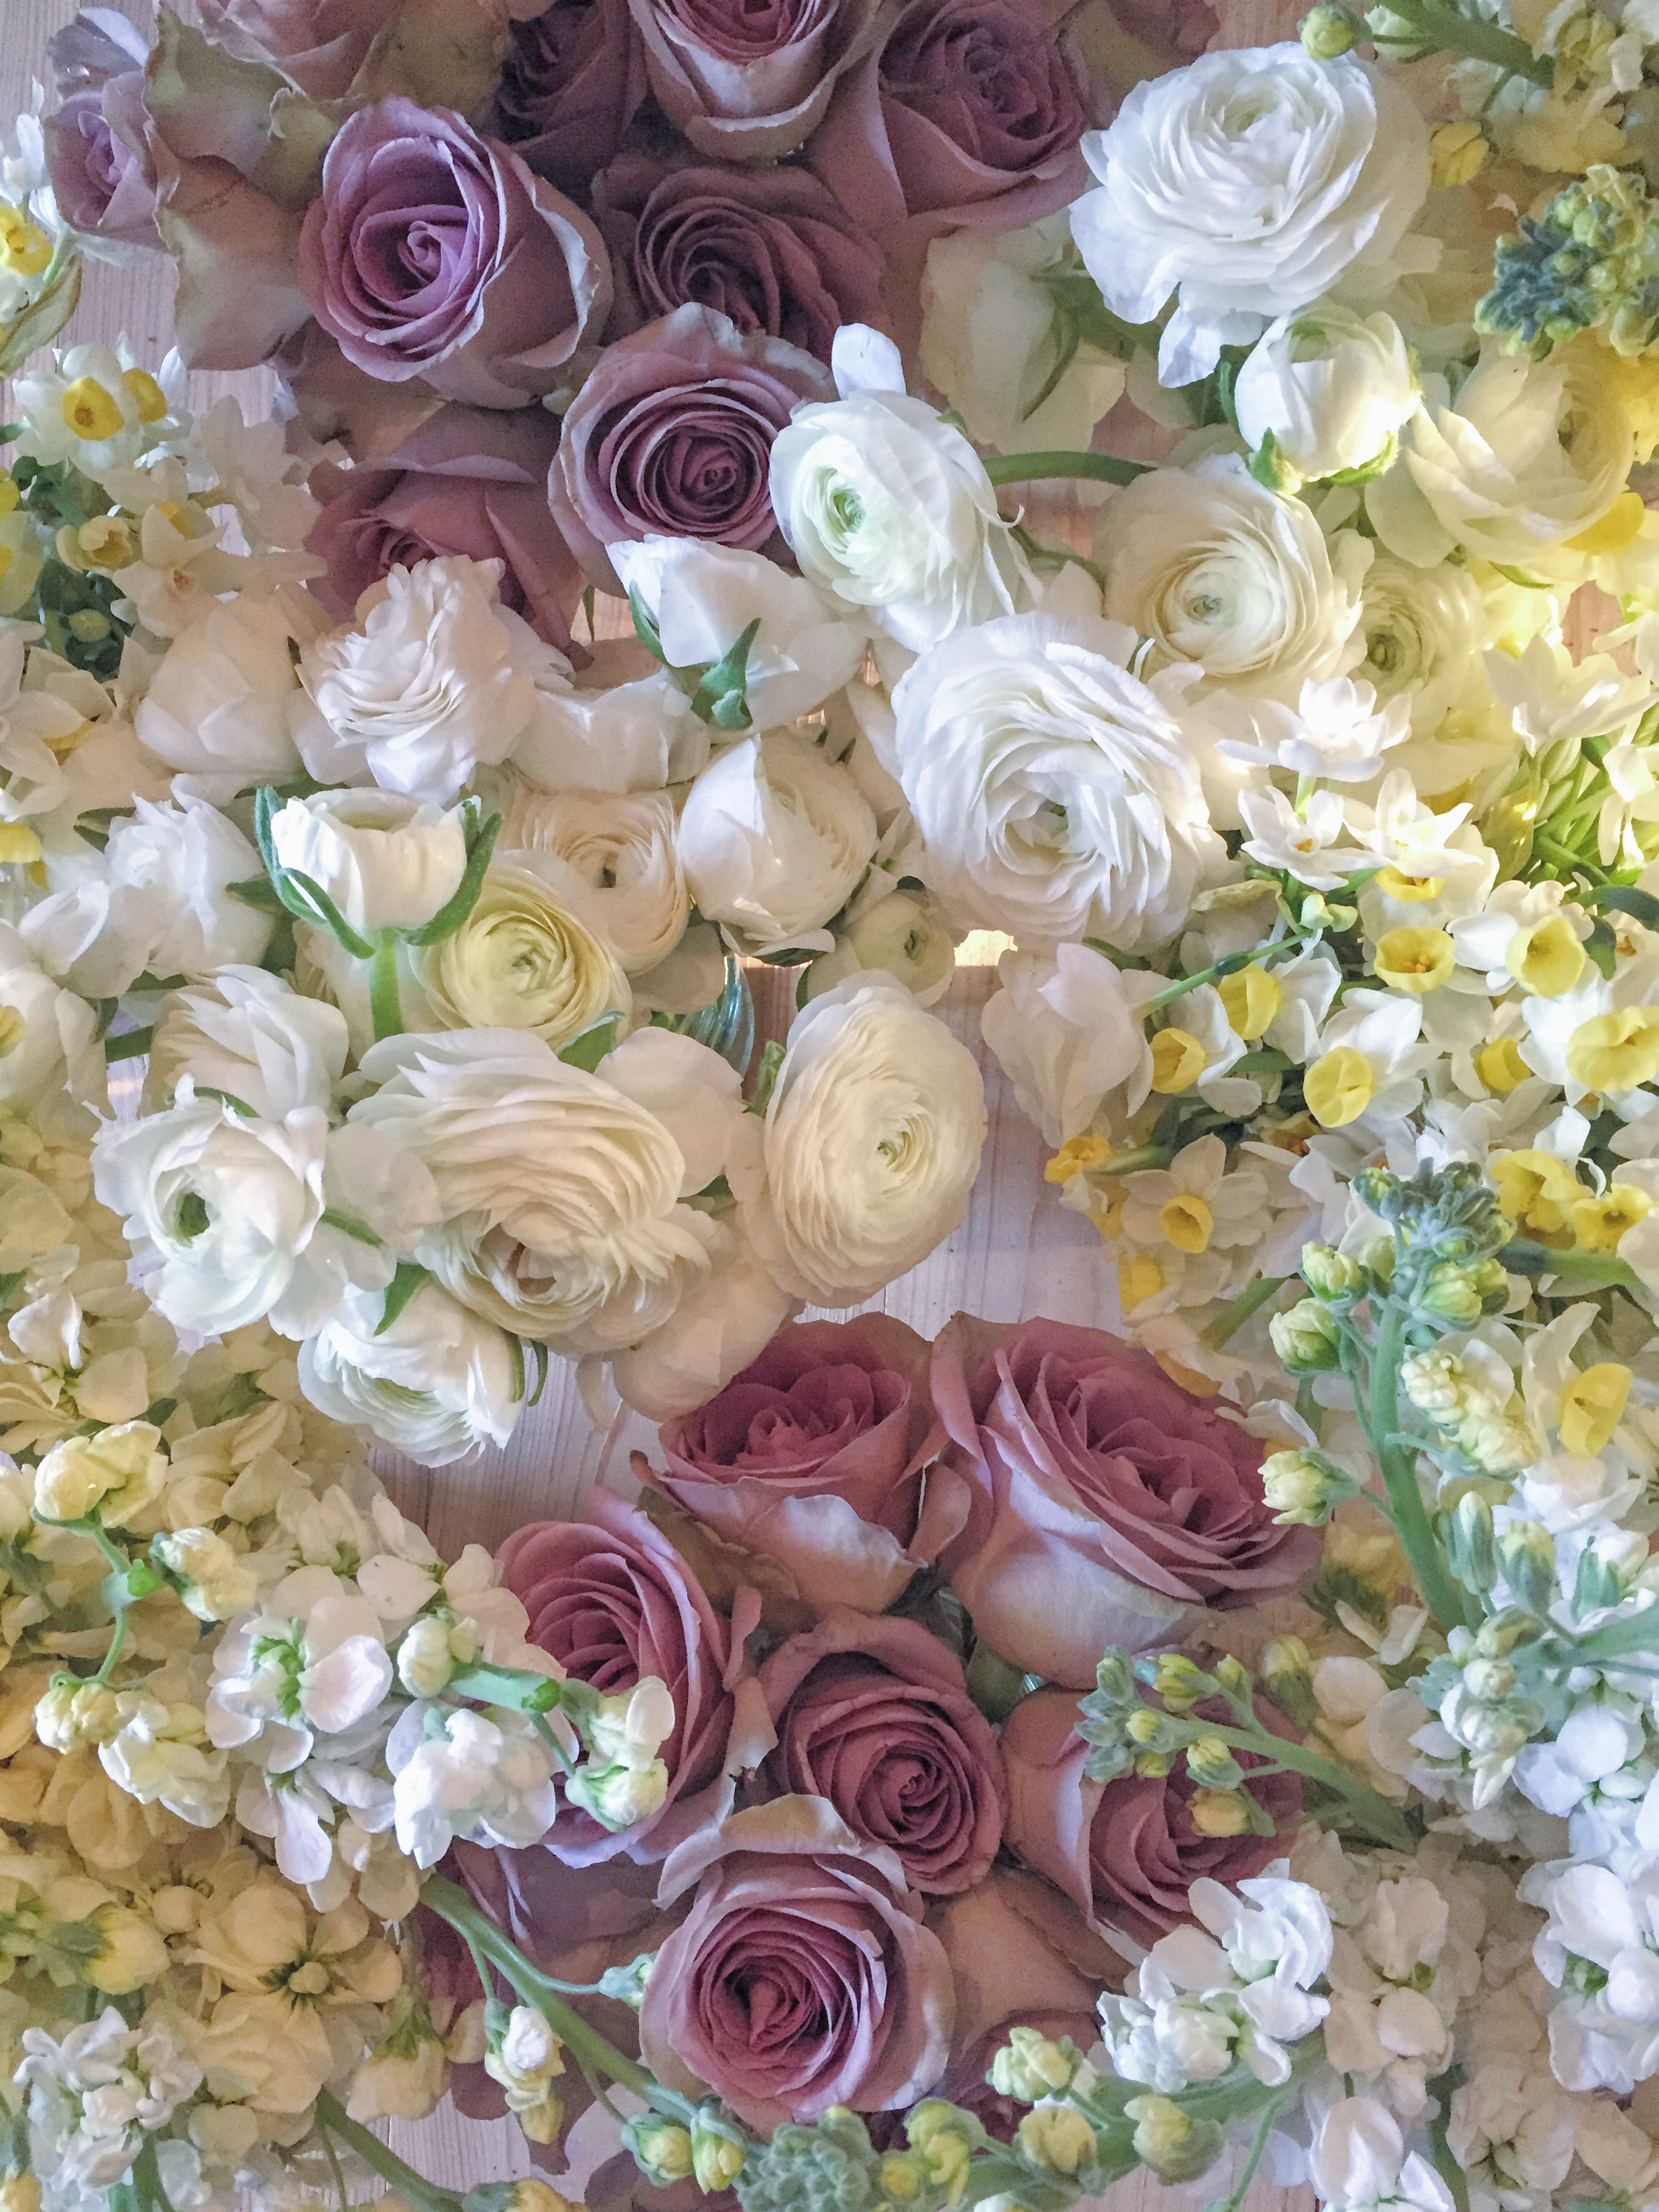 stock, roses, narcissi and ranunculus flatlay by Jennifer Pinder